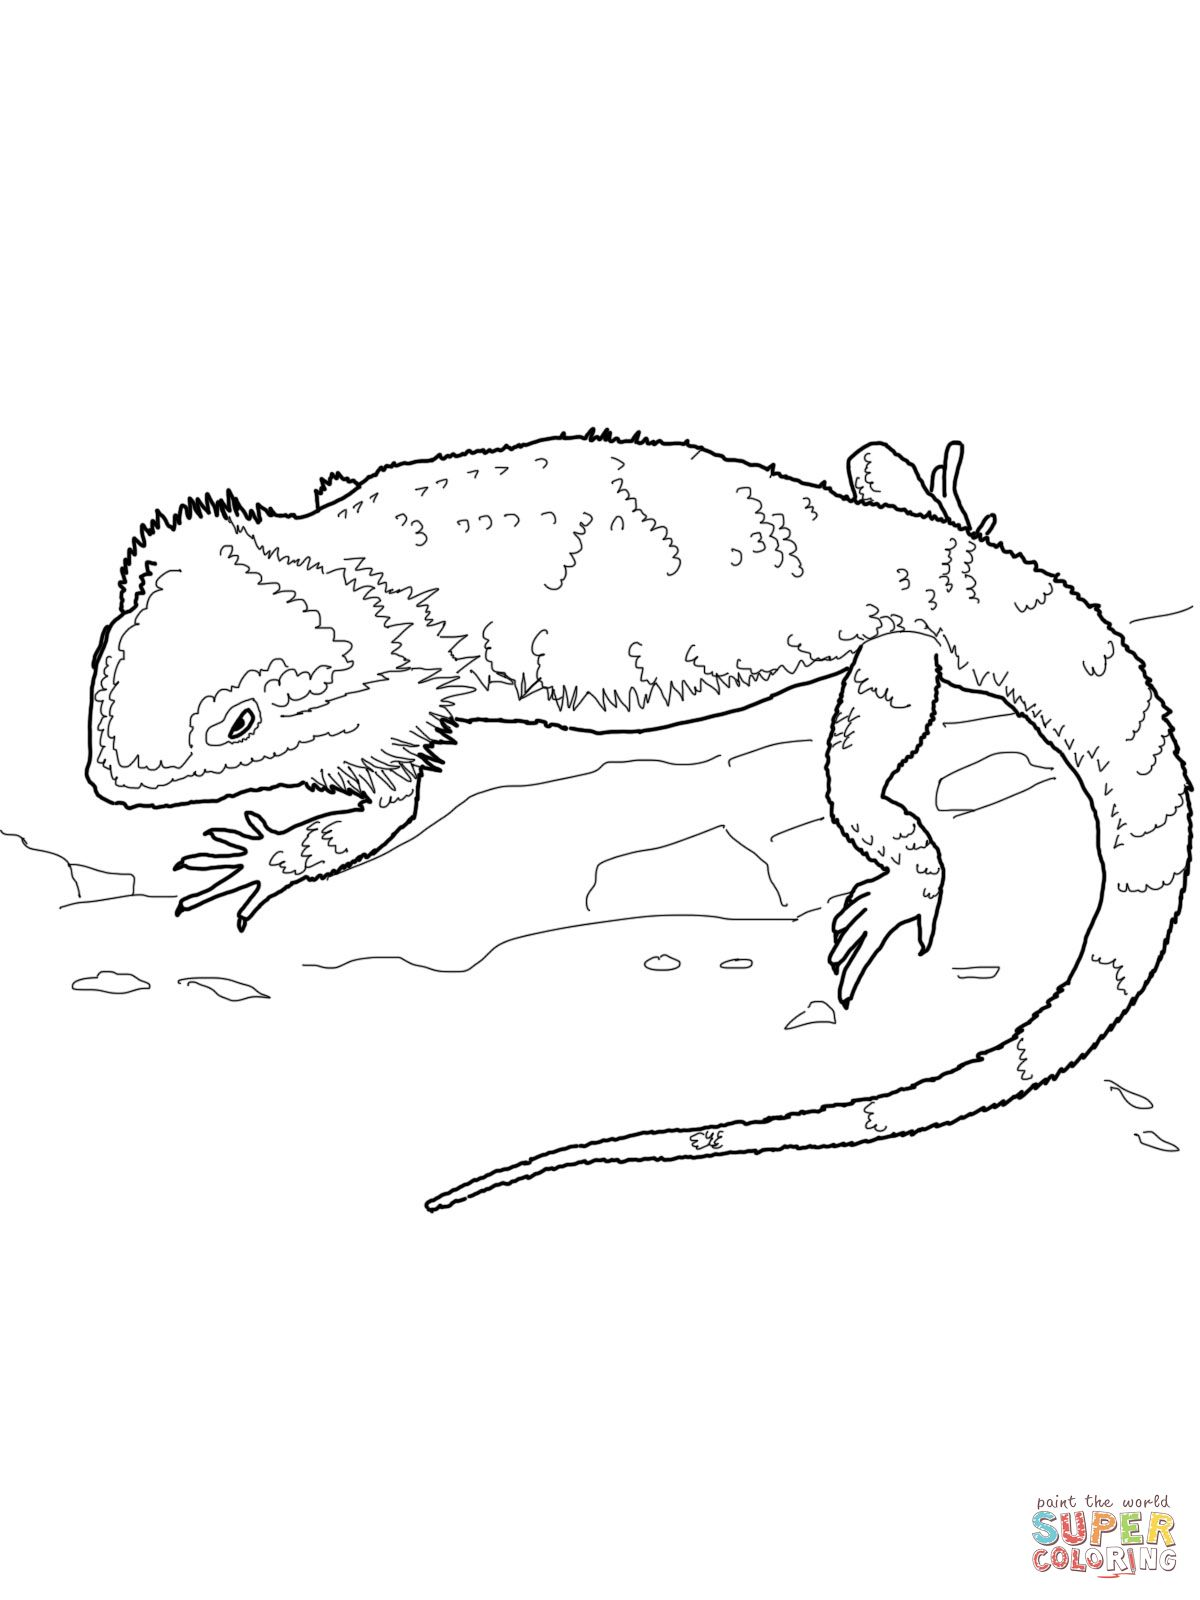 bearded dragon children\'s book - Google Search | Coloring Pages ...